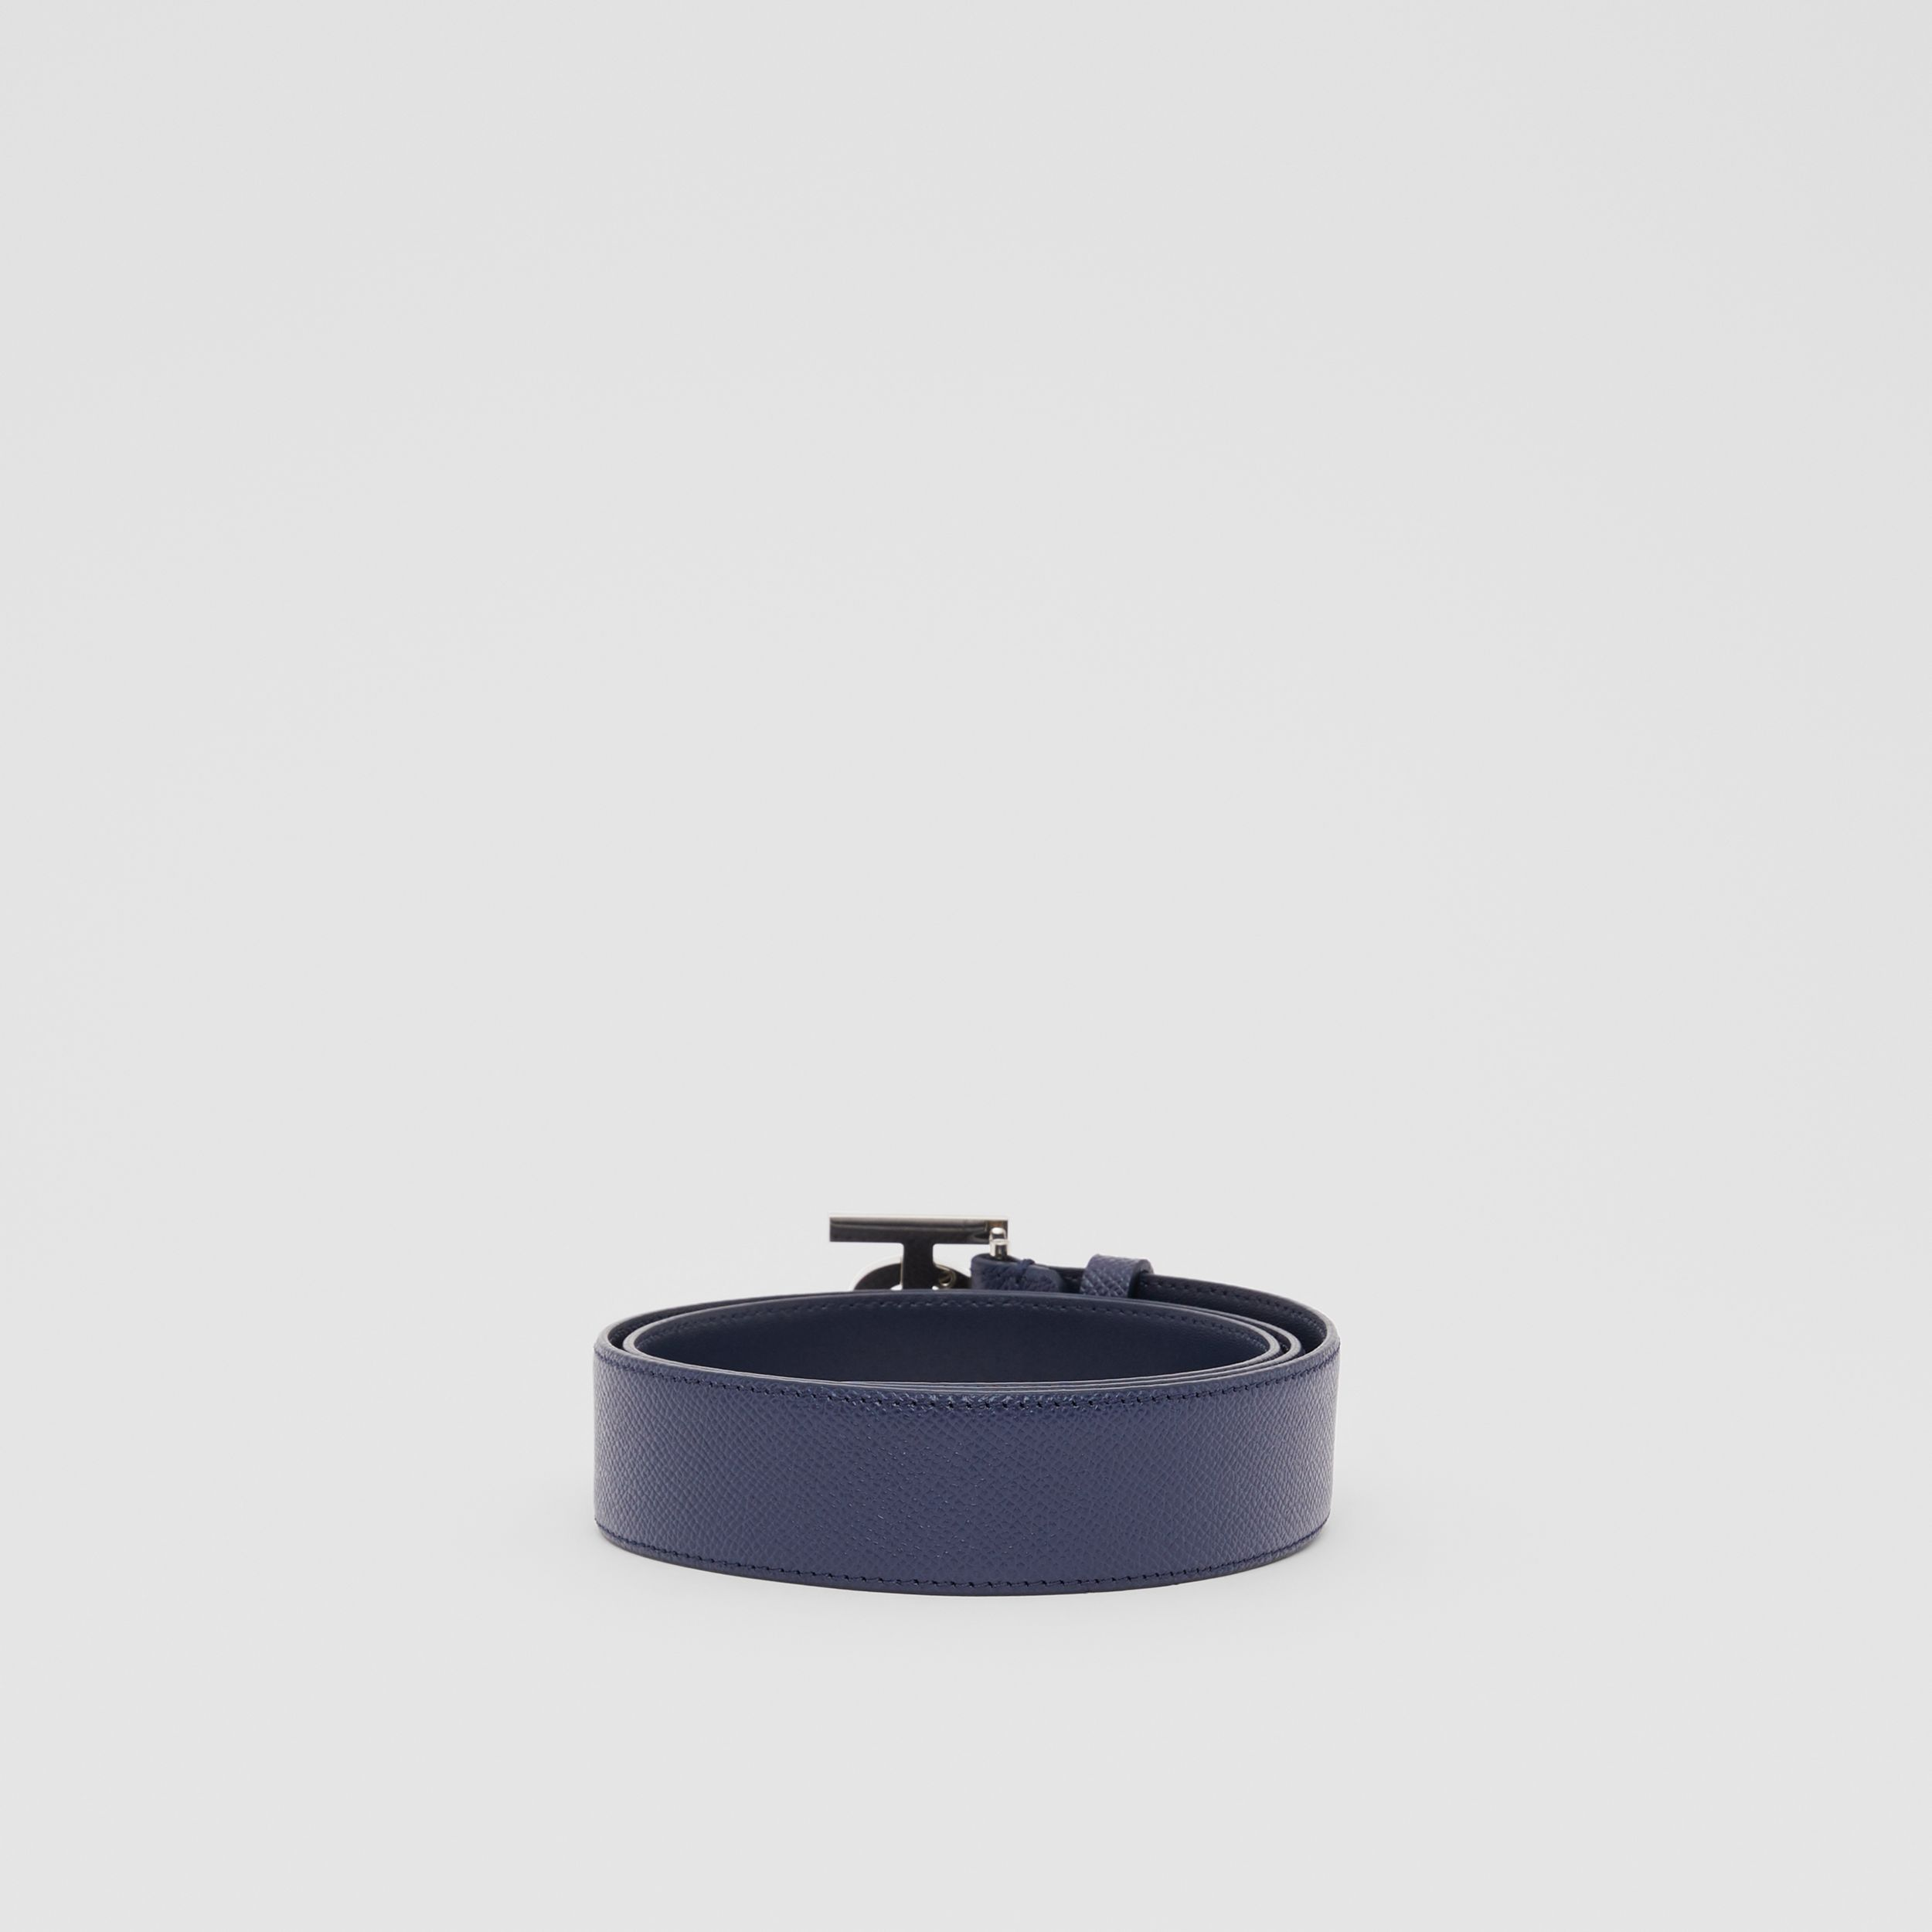 Monogram Motif Grainy Leather Belt in Navy - Men | Burberry - 4